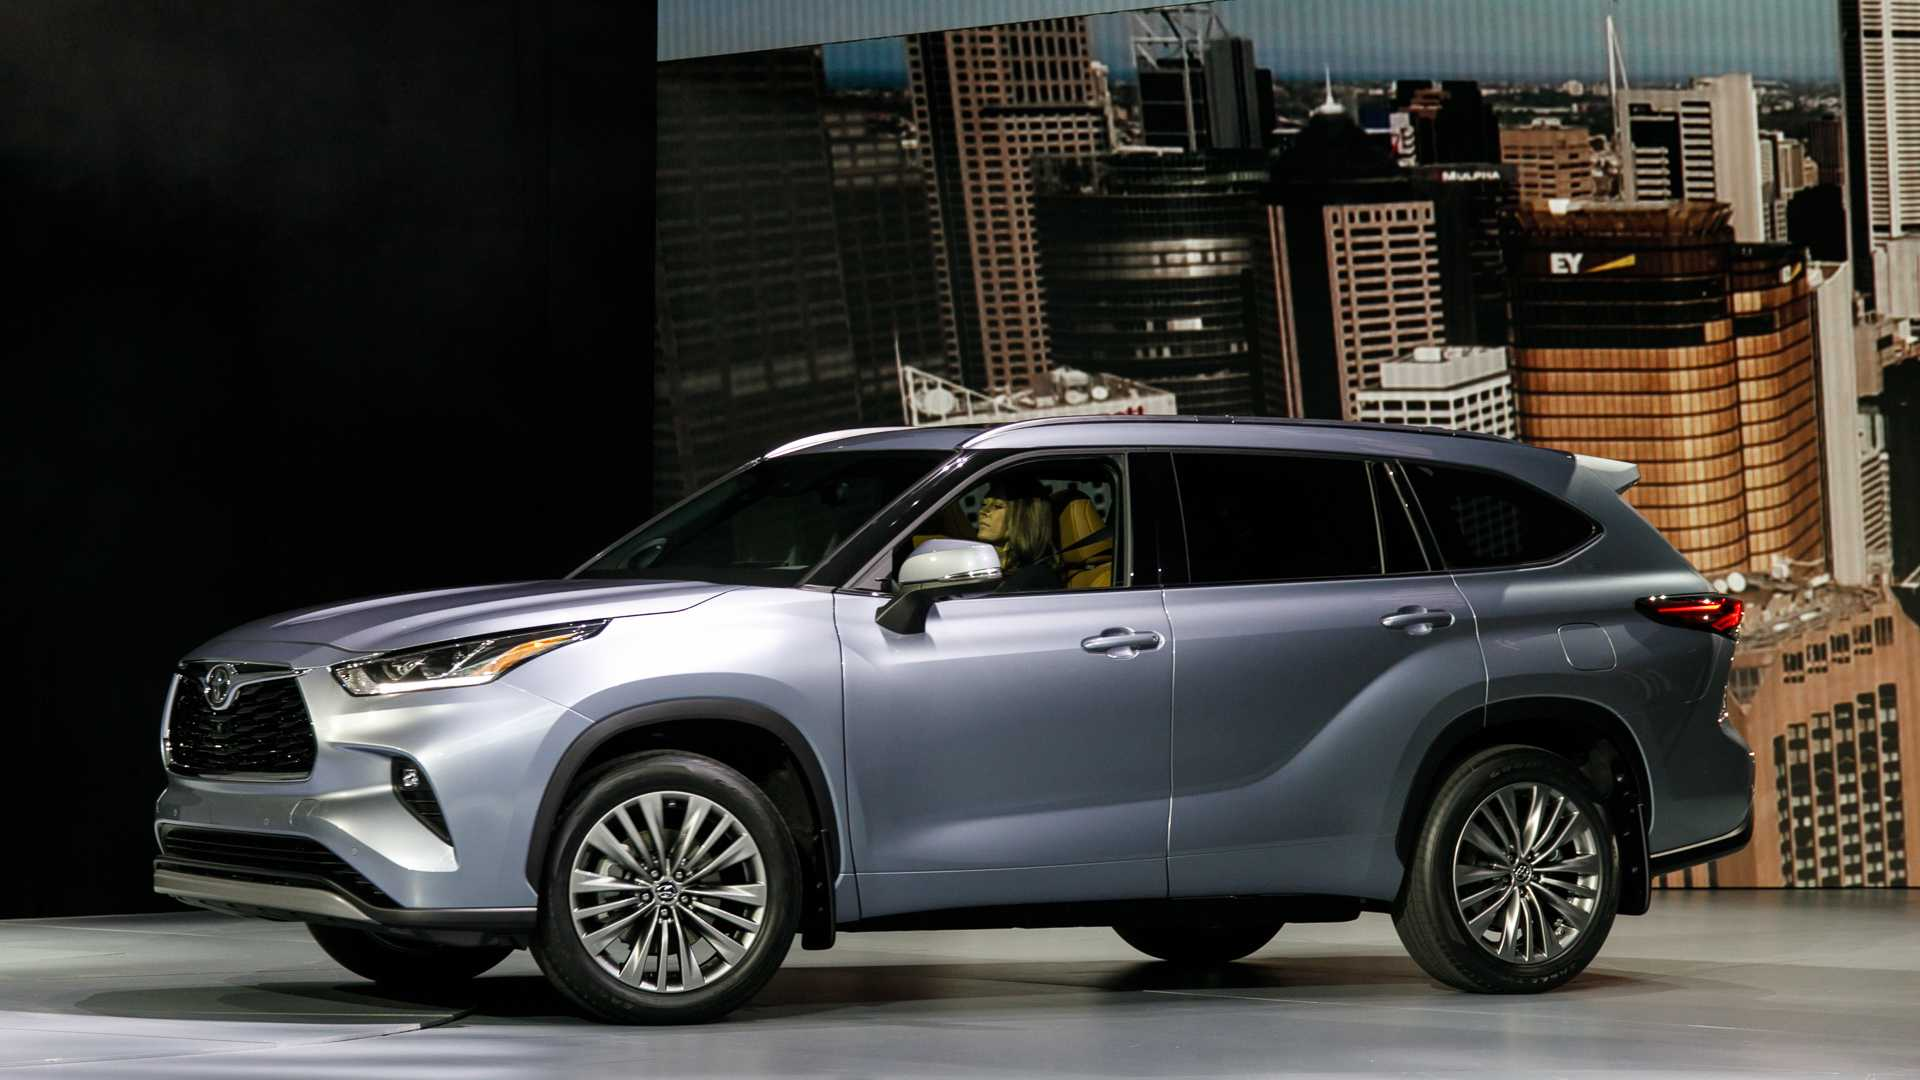 92 Best Review Pictures Of 2020 Toyota Highlander Price by Pictures Of 2020 Toyota Highlander